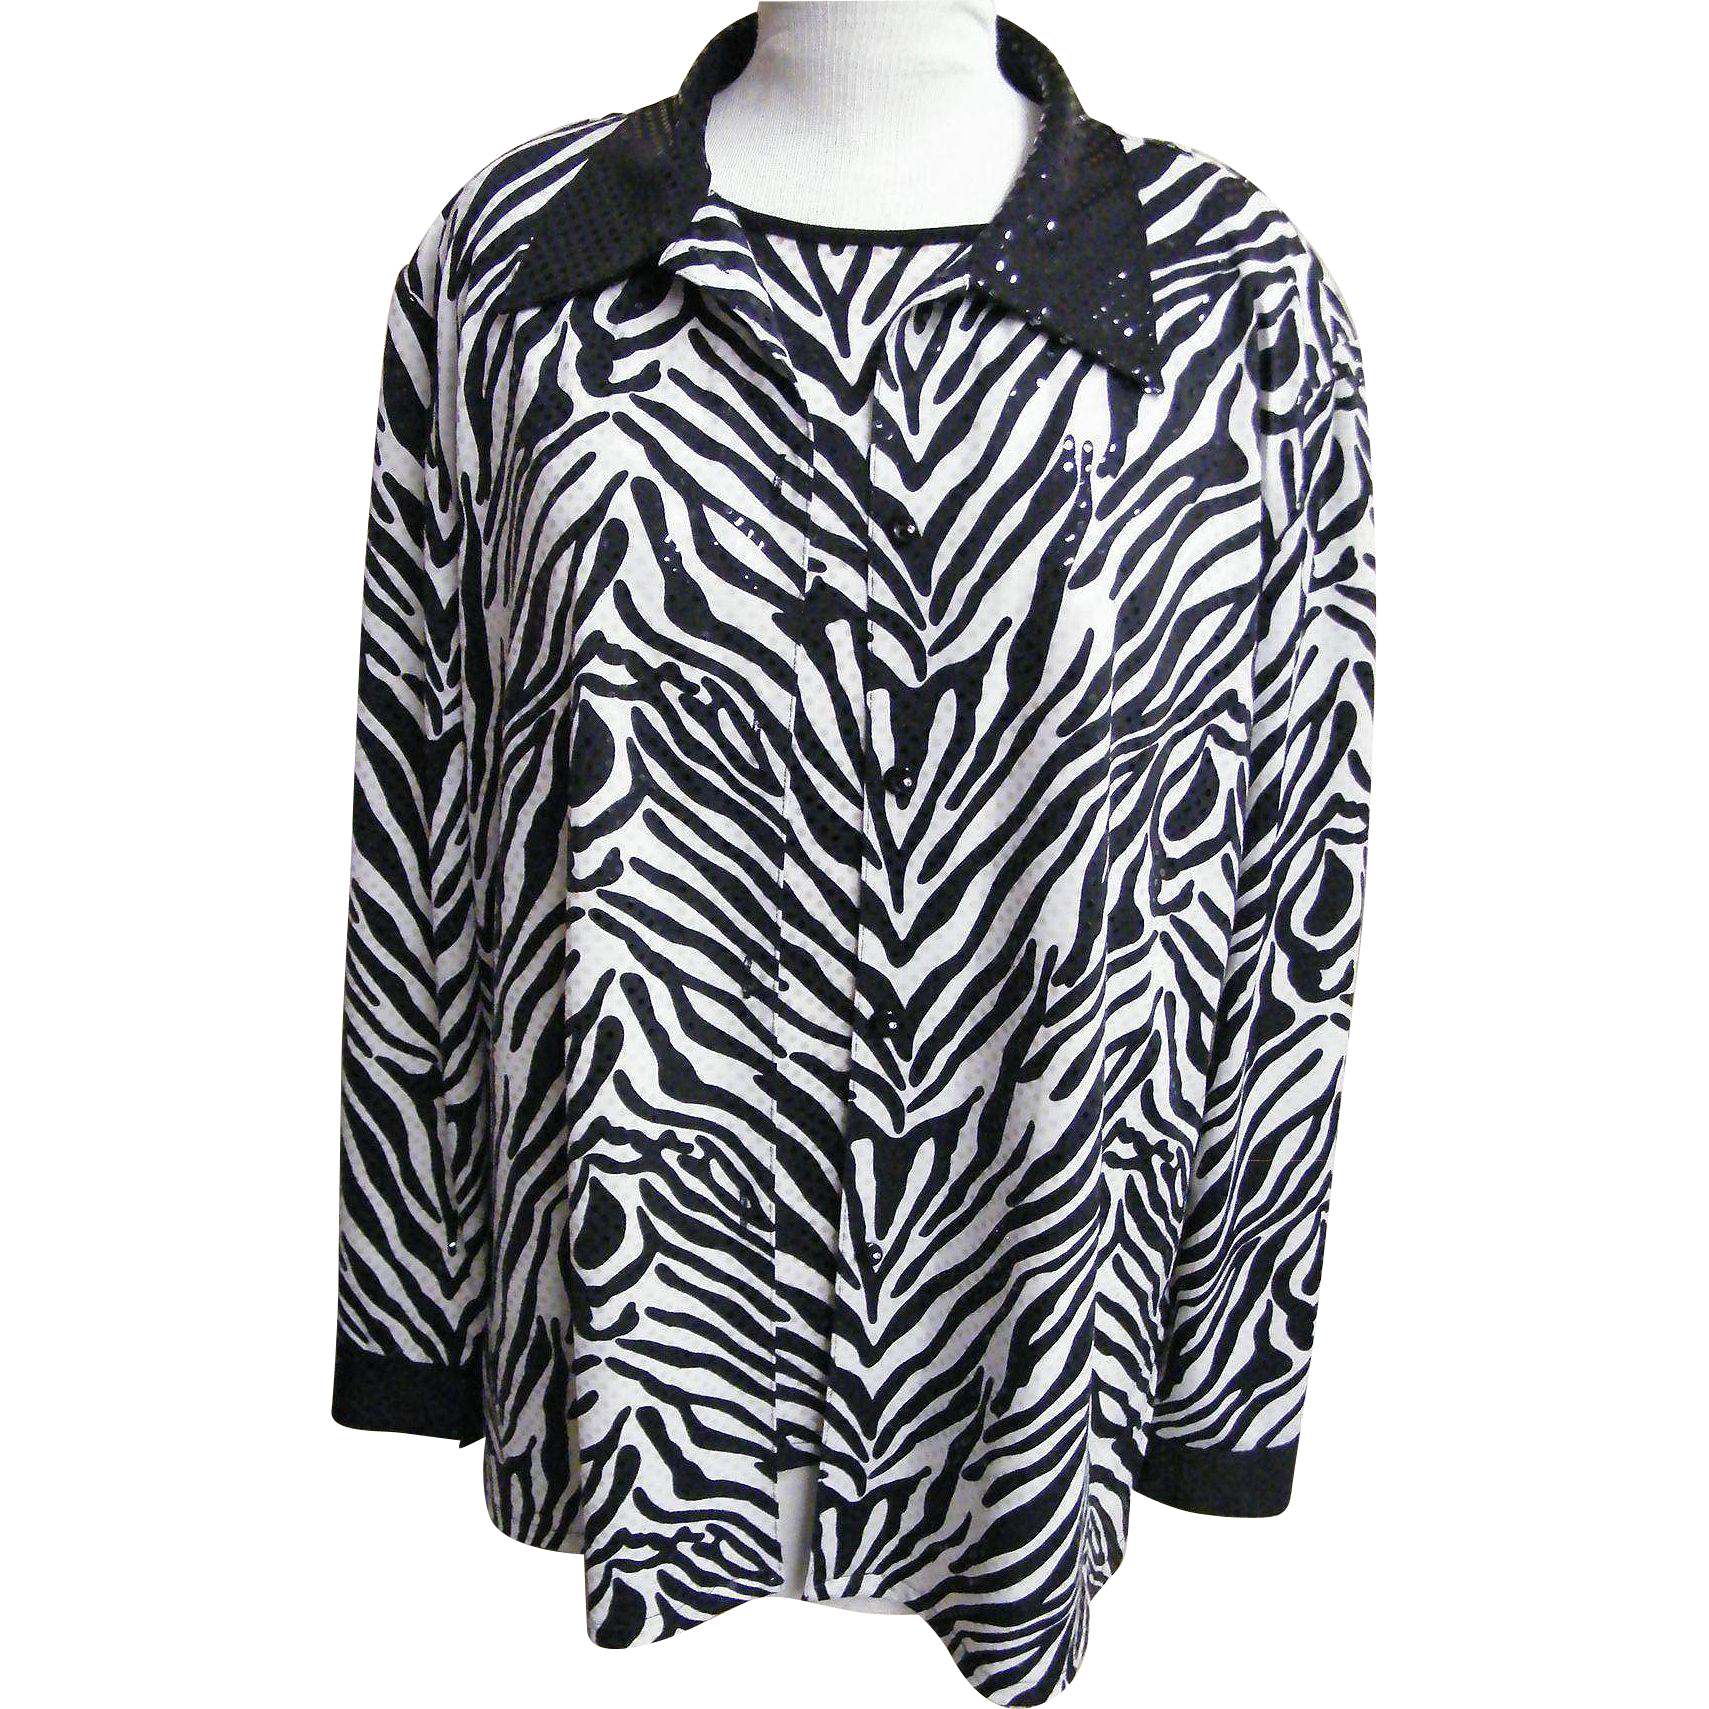 Jacket & Sleeveless Top Coordinate..Zebra Print..Sequins..Formal..Size X Large..Korea..Excellent Condition!